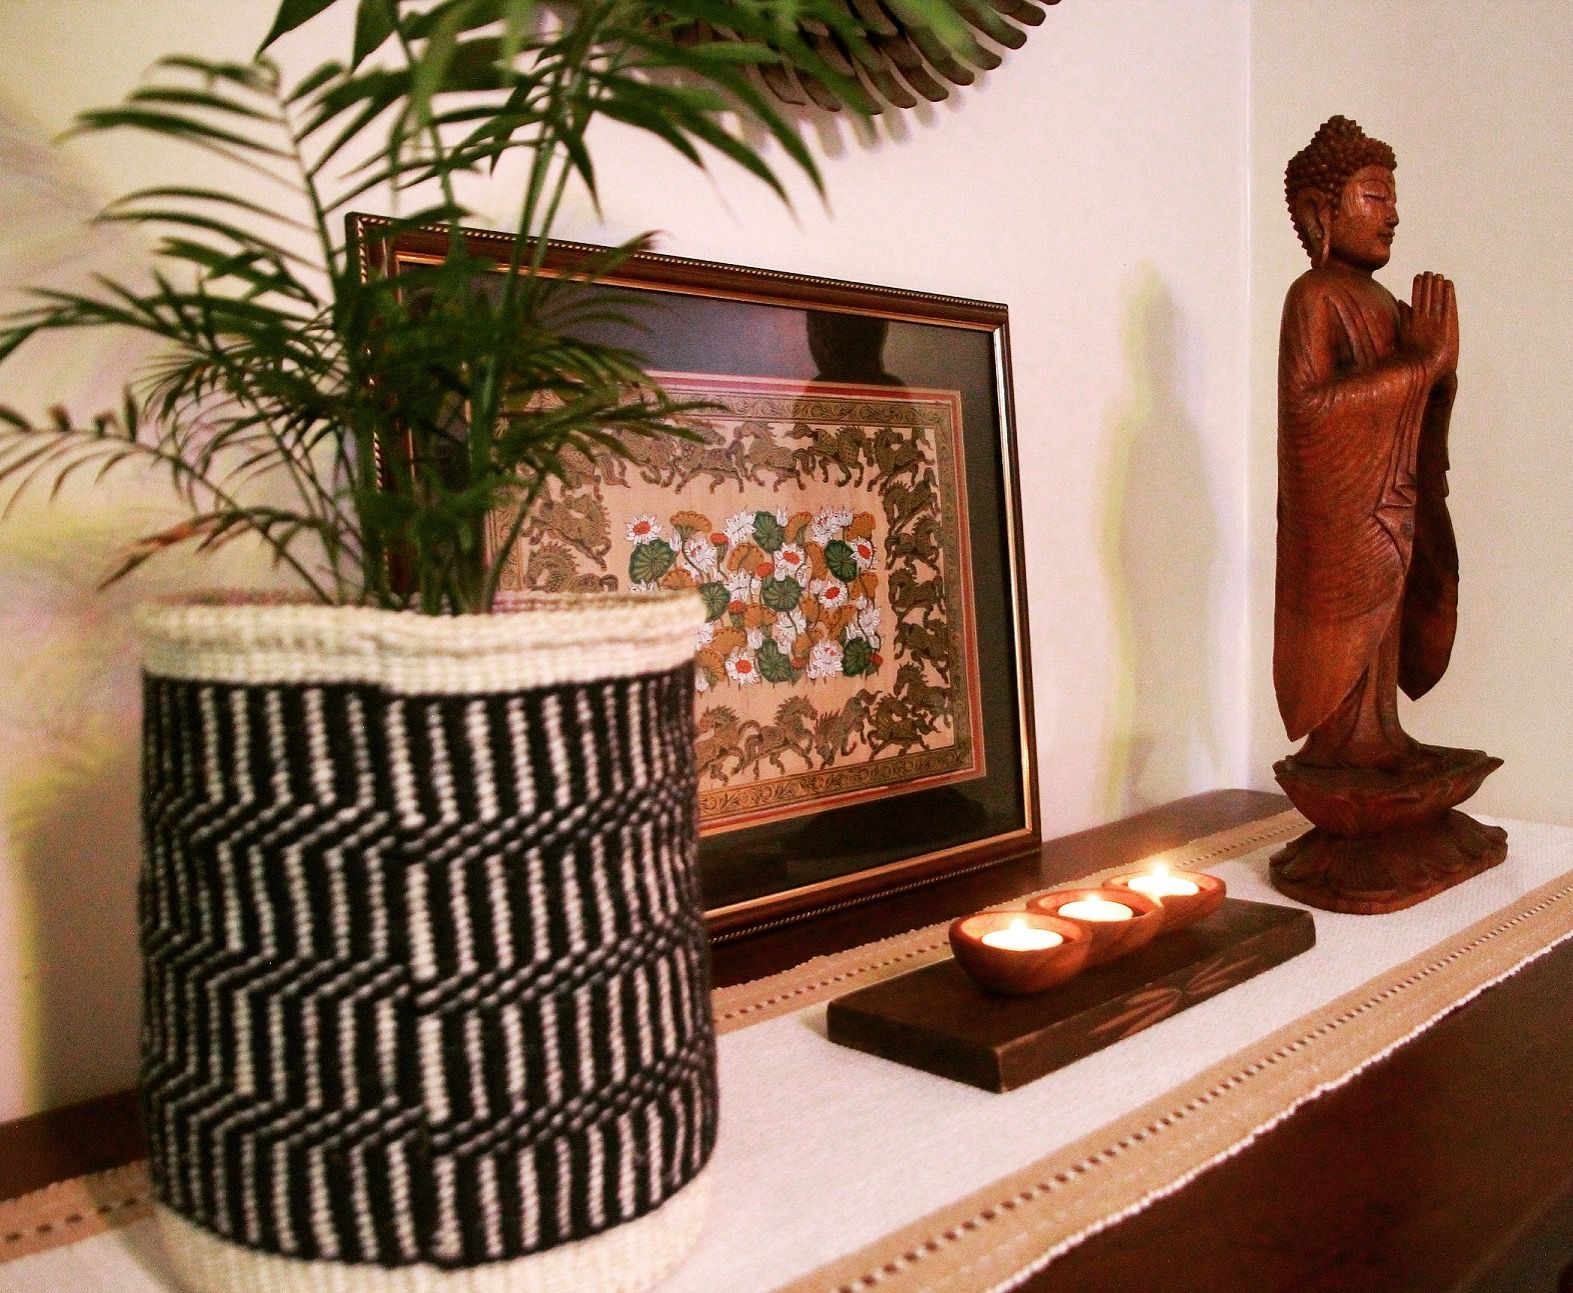 Buddha Peaceful Corner Zen Home Decor Interior Styling: Zen Corner Of Our Home!! Balinese Buddha, Indian Pata